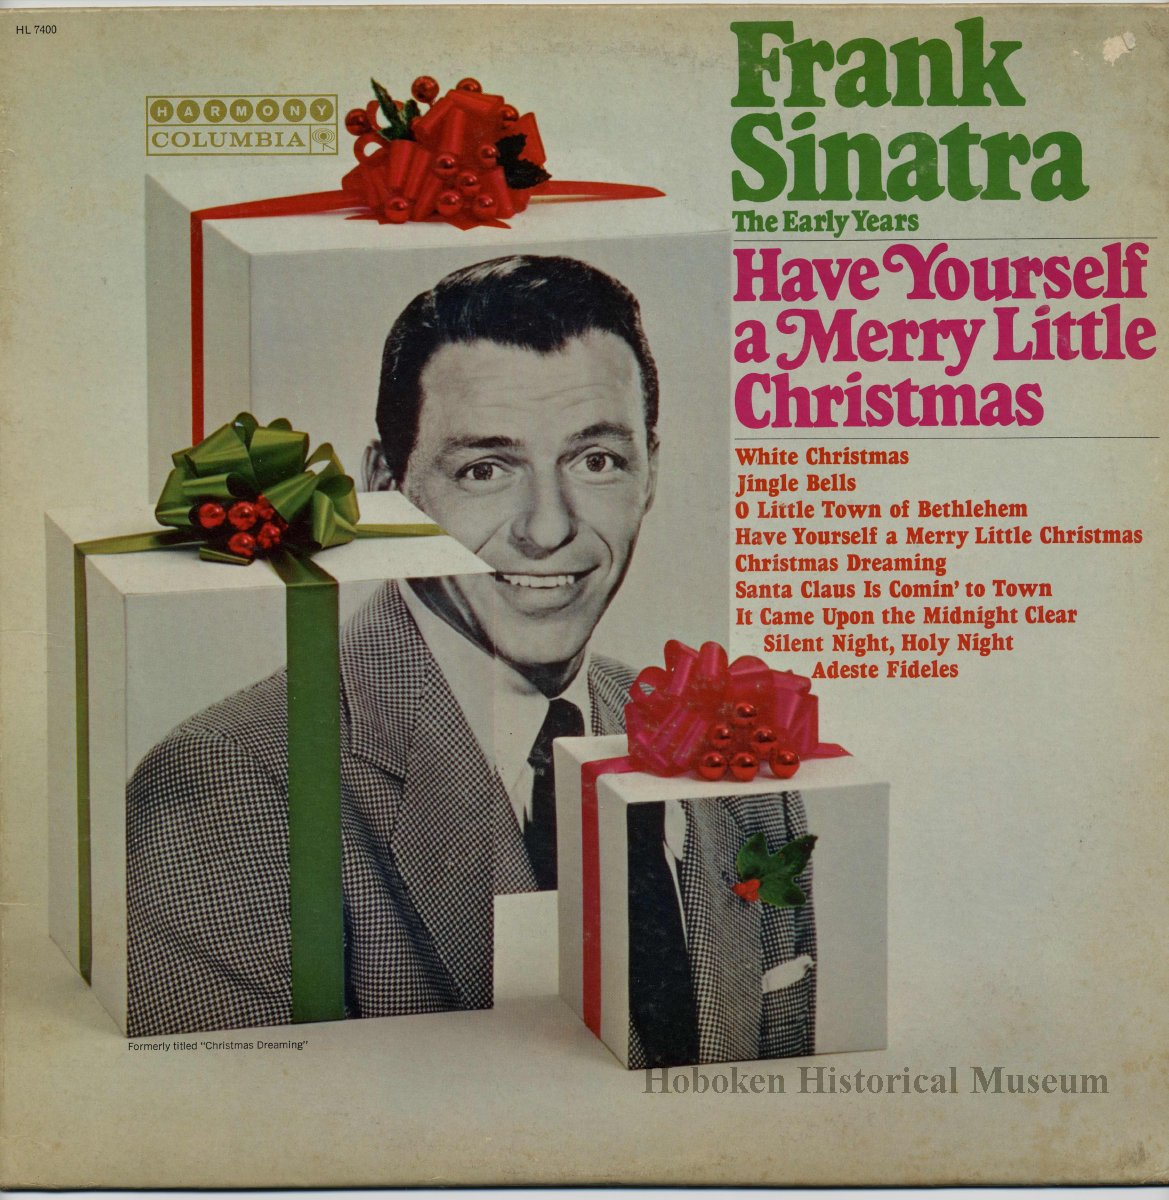 Frank Sinatra Have Yourself A Merry Little Christmas.Record Album Frank Sinatra Frank Sinatra The Early Years